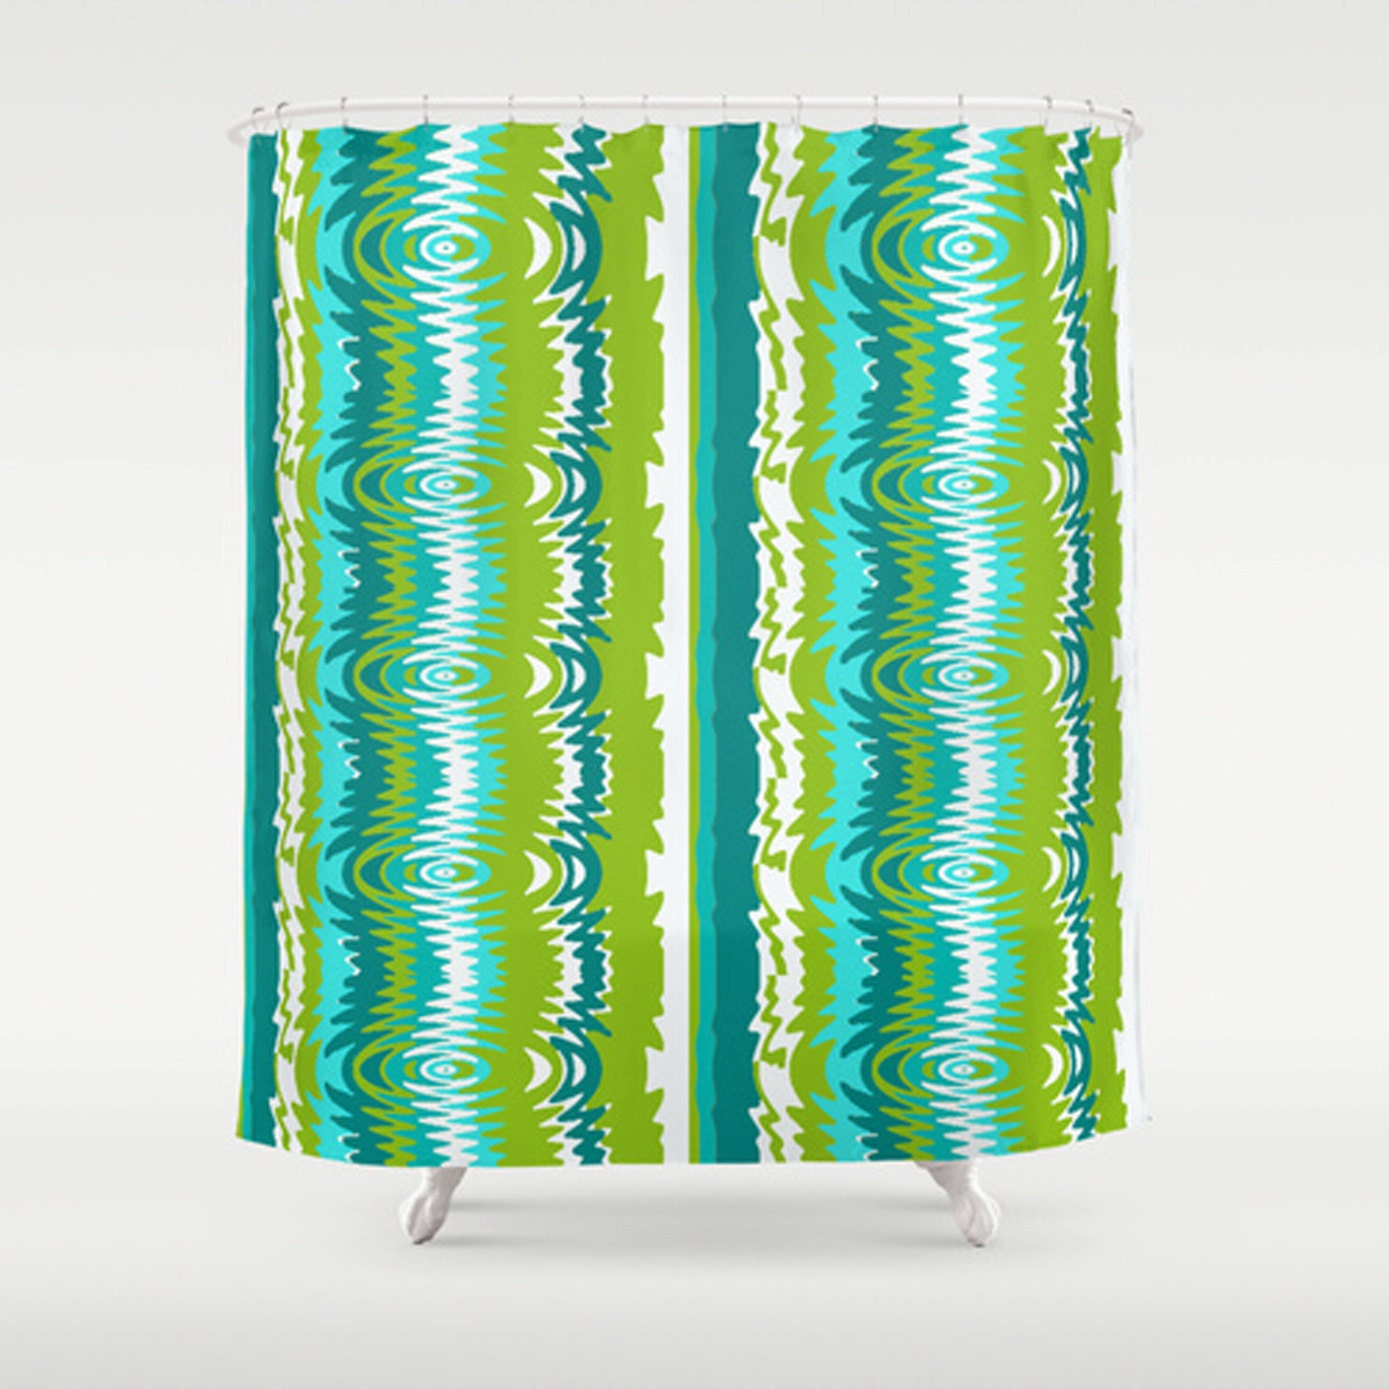 Mid century shower curtain